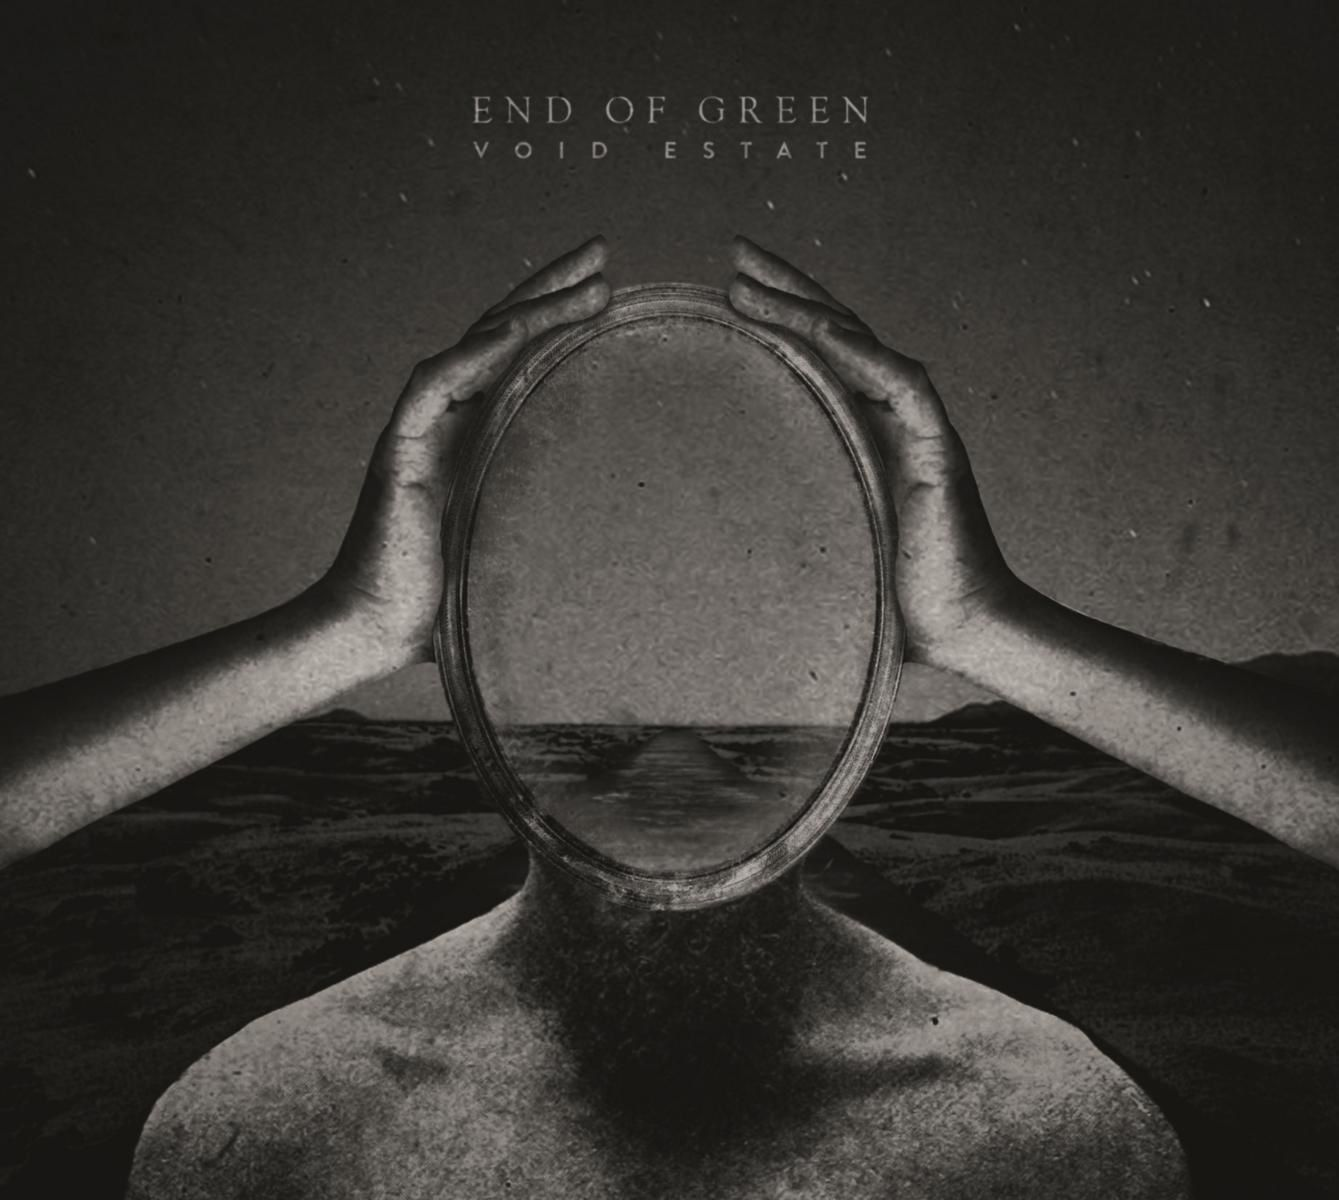 END OF GREEN premiers new song